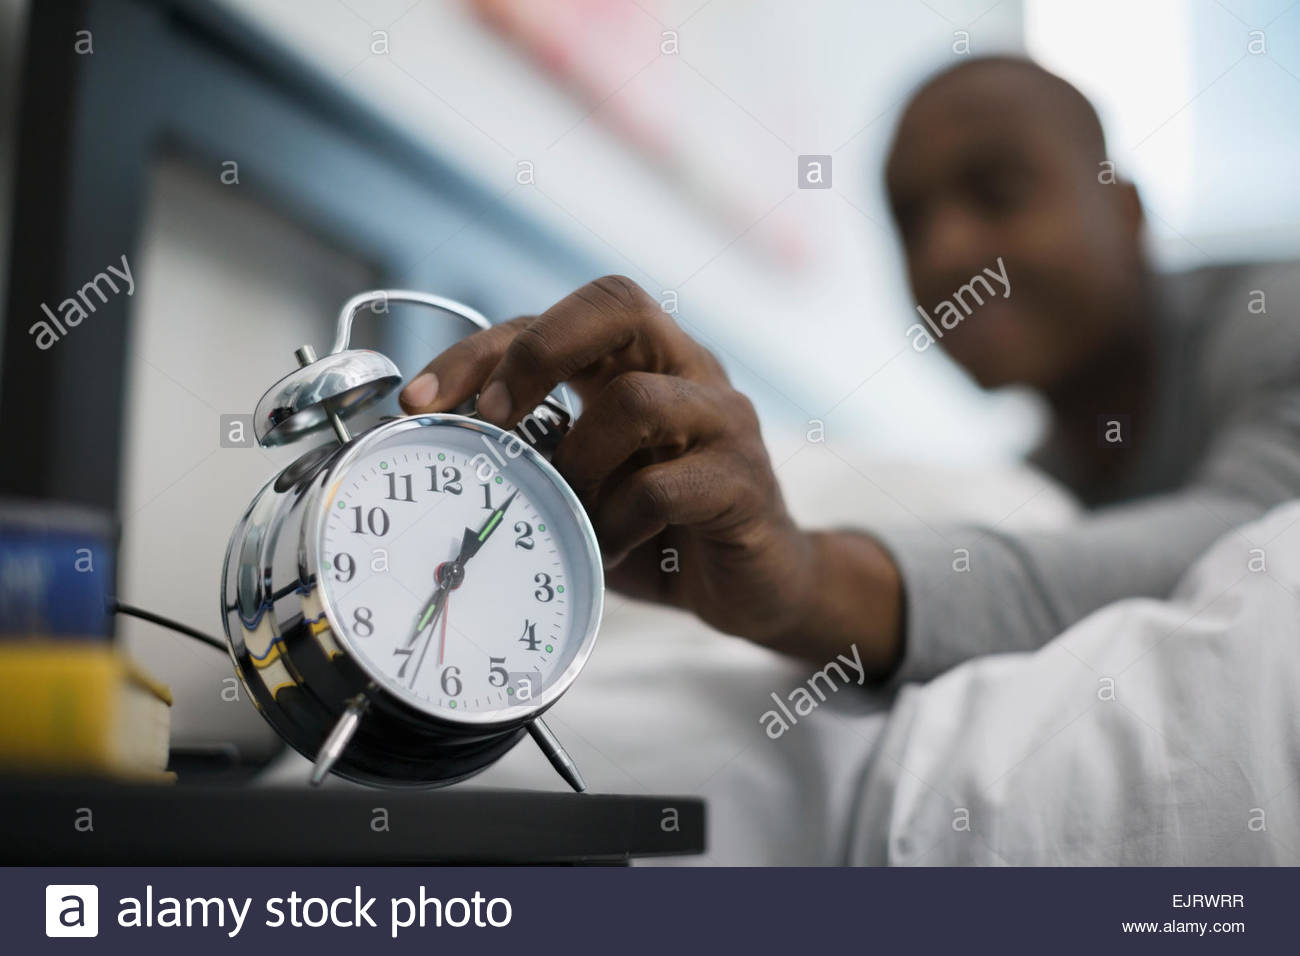 Man awaking to and turning off alarm clock - Stock Image